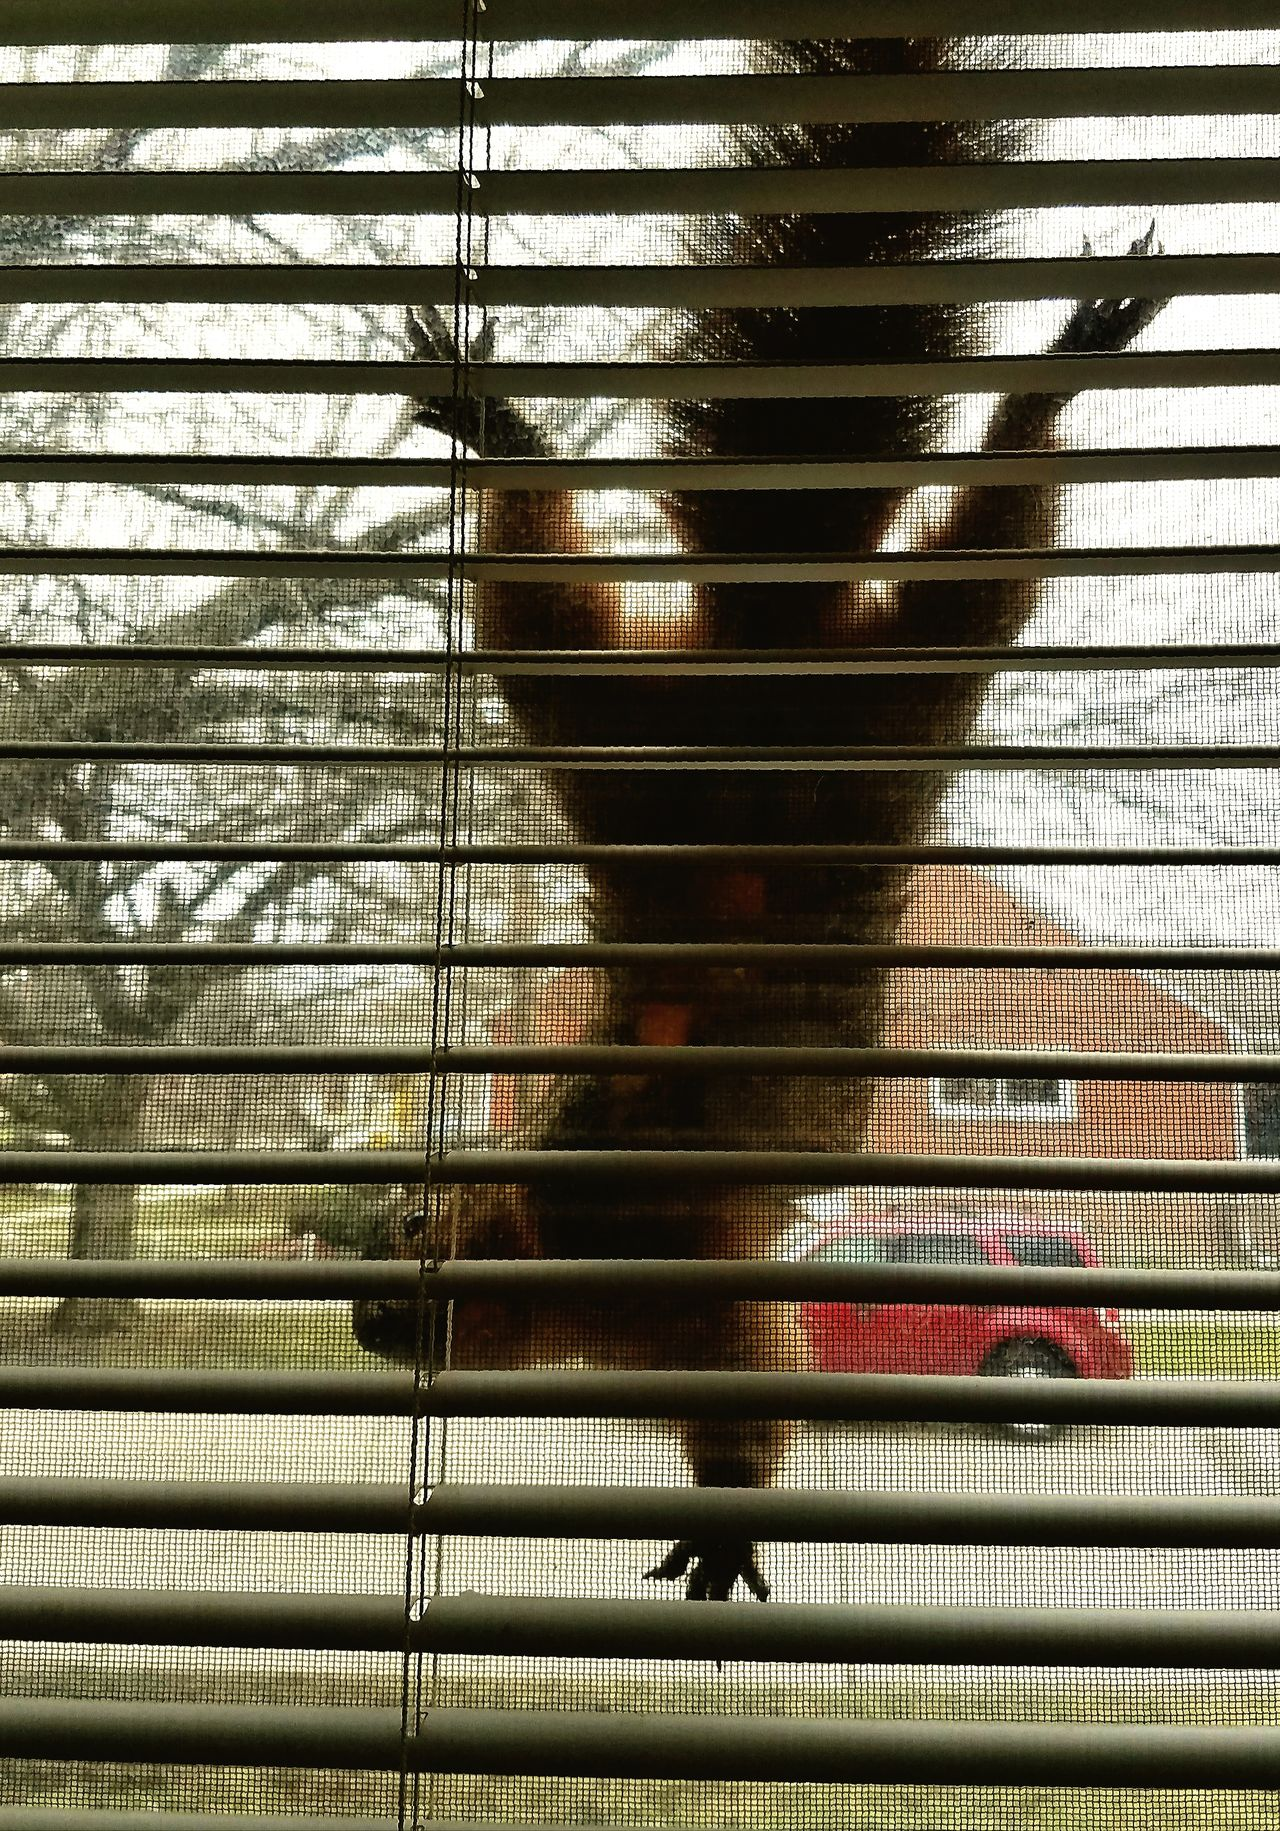 So there's this Neighbor that Runs around looking for Deeznutz and when she cant find them she turns into the neighborhood PeepingTom PrivacyInvaders Hellosquirrel Outsiders  WindowClimber MichiganAnimals Wildlife